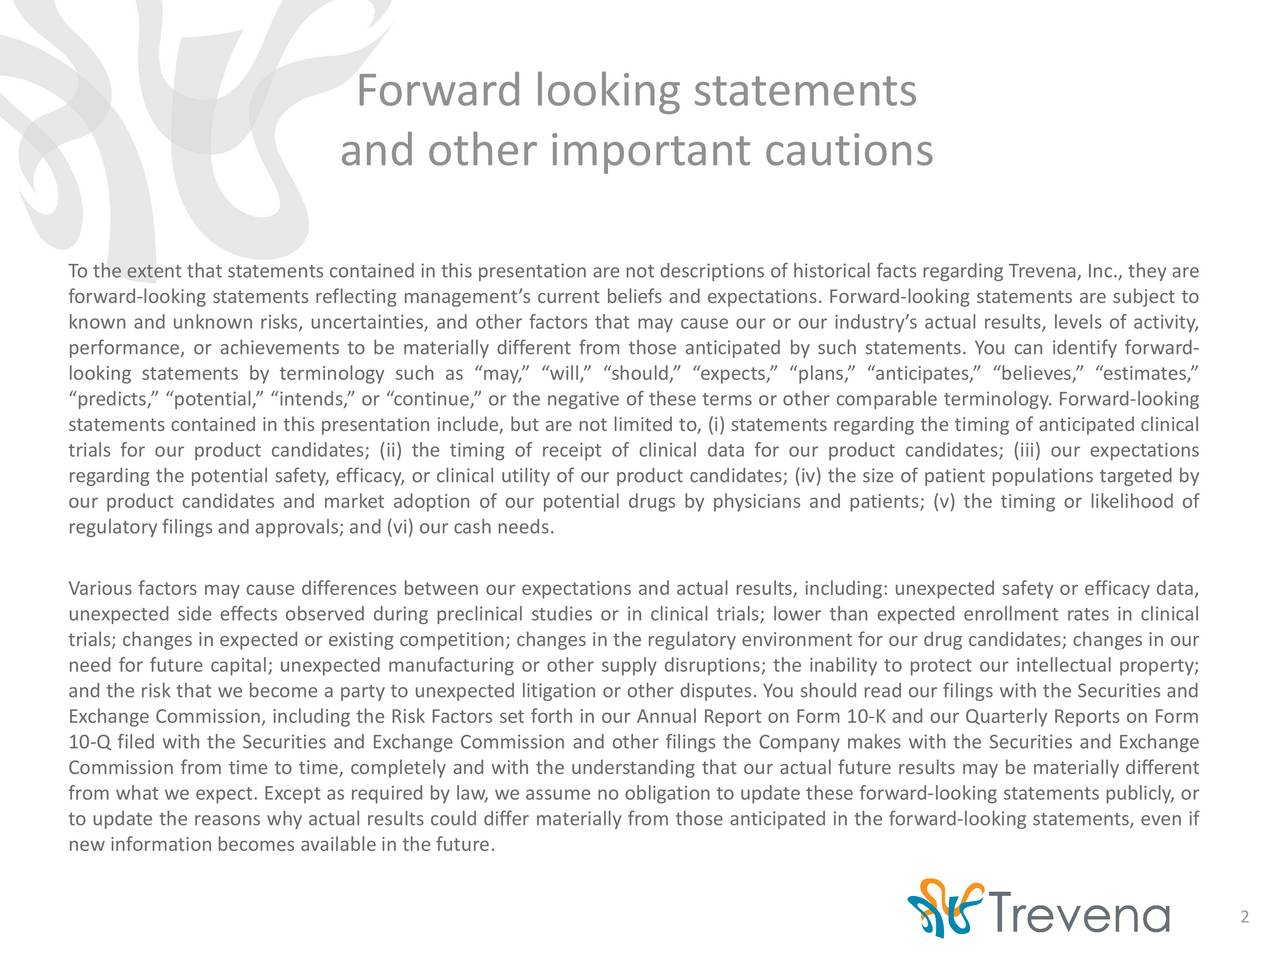 and other important cautions To the extent that statements contained in this presentation are not descriptions of historical facts regarding Trevena, Inc., they are forward-looking statements reflecting managements current beliefs and expectations. Forward-looking statements are subject to known and unknown risks, uncertainties, and other factors that may cause our or our industrys actual results, levels of activity, performance, or achievements to be materially different from those anticipated by such statements. You can identify forward- looking statements by terminology such as may, will, should, expects, plans, anticipates, believes, estimates, predicts, potential, intends, or continue, or the negative of these terms or other comparable terminology. Forward-looking statements contained in this presentation include, but are not limited to, (i) statements regarding the timing of anticipated clinical trials for our product candidates; (ii) the timing of receipt of clinical data for our product candidates; (iii) our expectations regarding the potential safety, efficacy, or clinical utility of our product candidates; (iv) the size of patient populations targeted by our product candidates and market adoption of our potential drugs by physicians and patients; (v) the timing or likelihood of regulatory filings and approvals; and (vi) our cash needs. Various factors may cause differences between our expectations and actual results, including: unexpected safety or efficacy data, unexpected side effects observed during preclinical studies or in clinical trials; lower than expected enrollment rates in clinical trials; changes in expected or existing competition; changes in the regulatory environment for our drug candidates; changes in our need for future capital; unexpected manufacturing or other supply disruptions; the inability to protect our intellectual property; and the risk that we become a party to unexpected litigation or other disputes. You should read our filings 